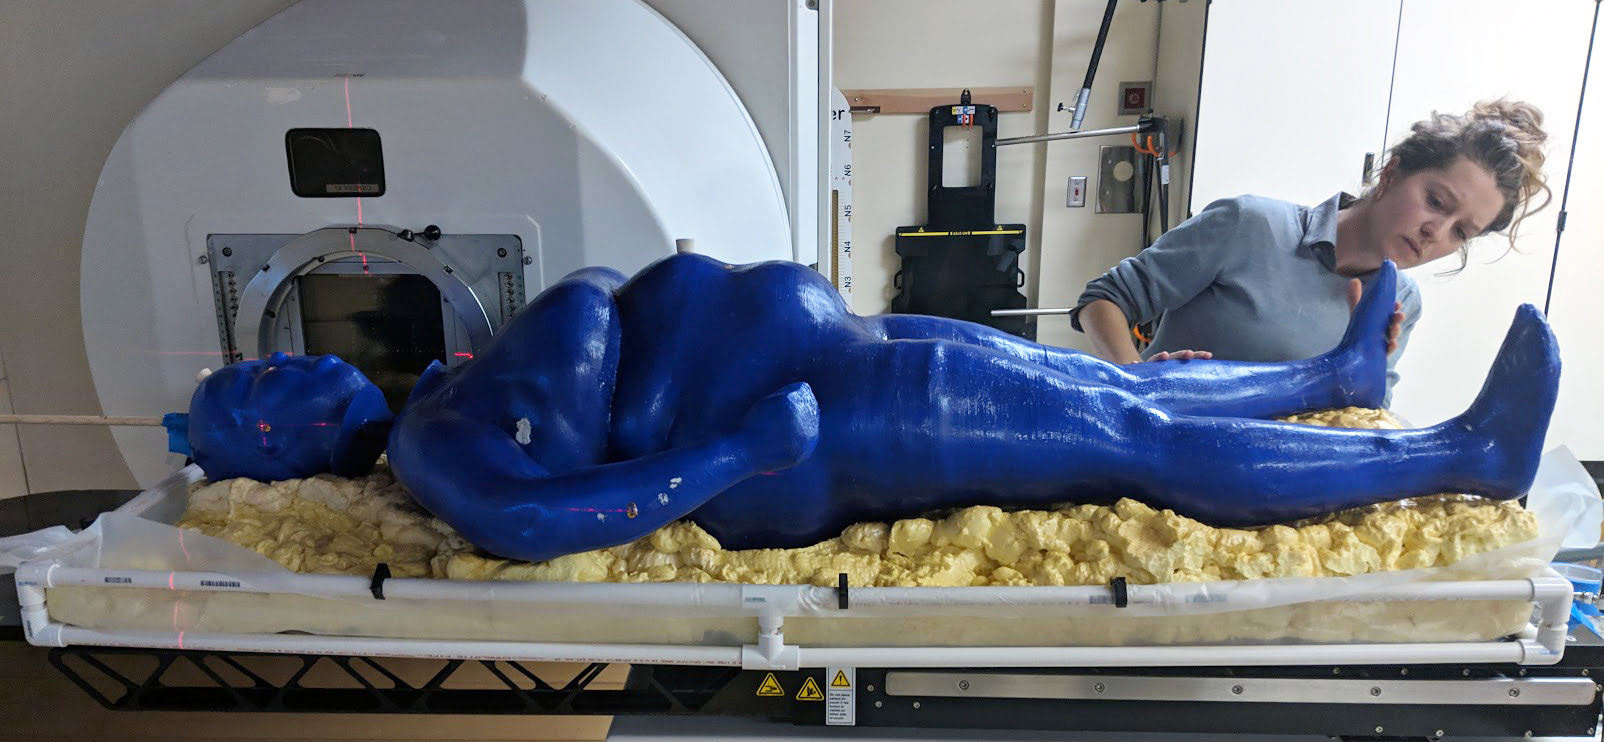 Life-size 3D Printed Human Body Could Aid Cancer Treatments